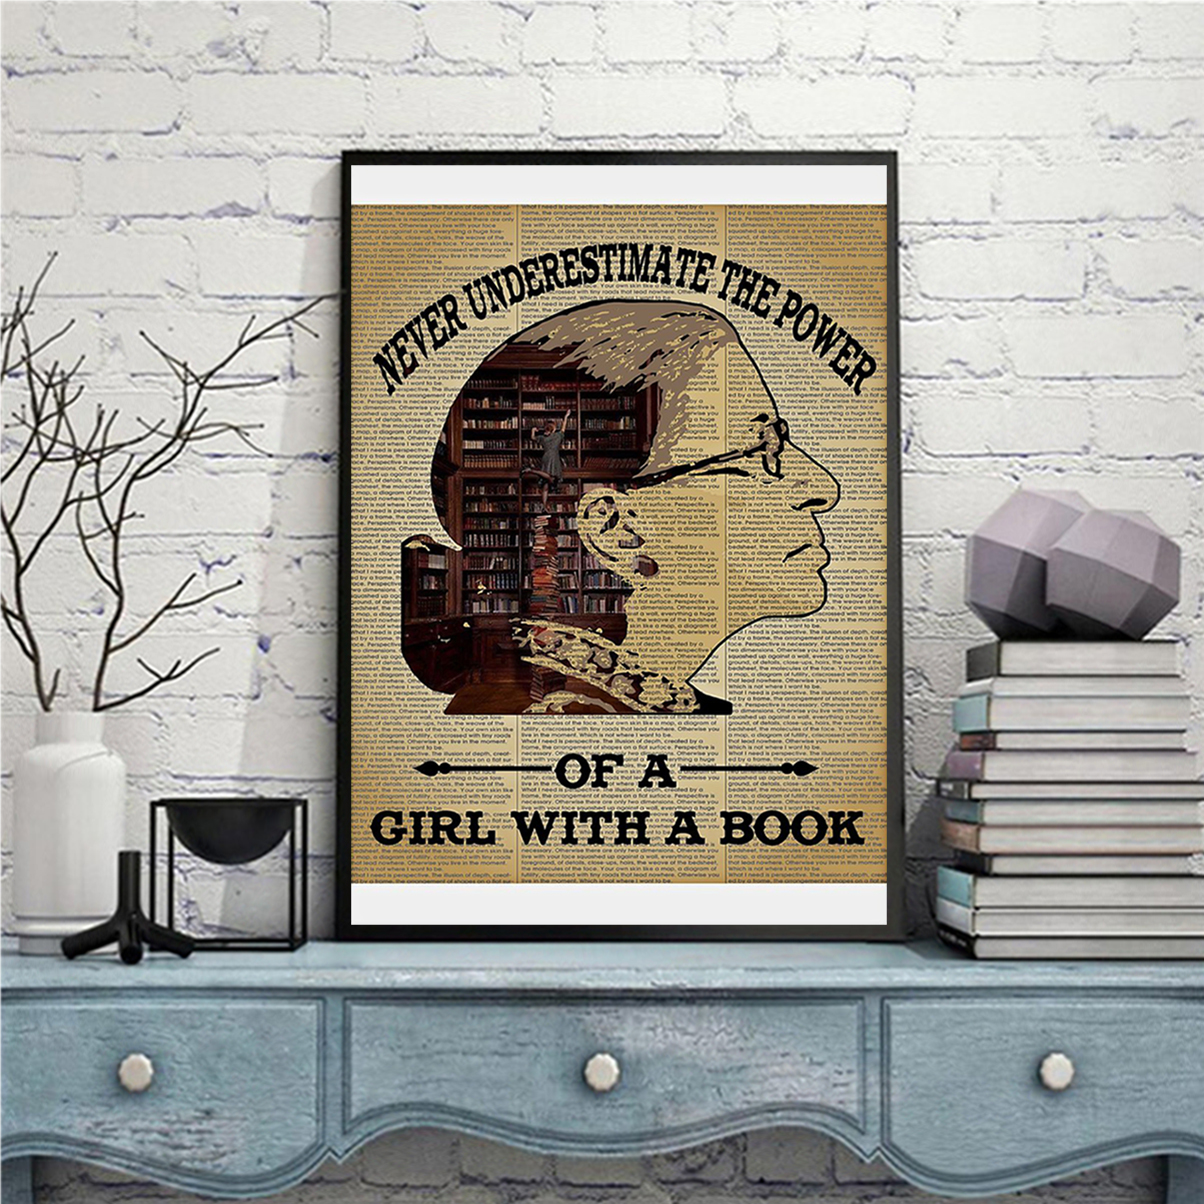 Ruth bader ginsburg never underestimate the power of a girl with a book poster A2